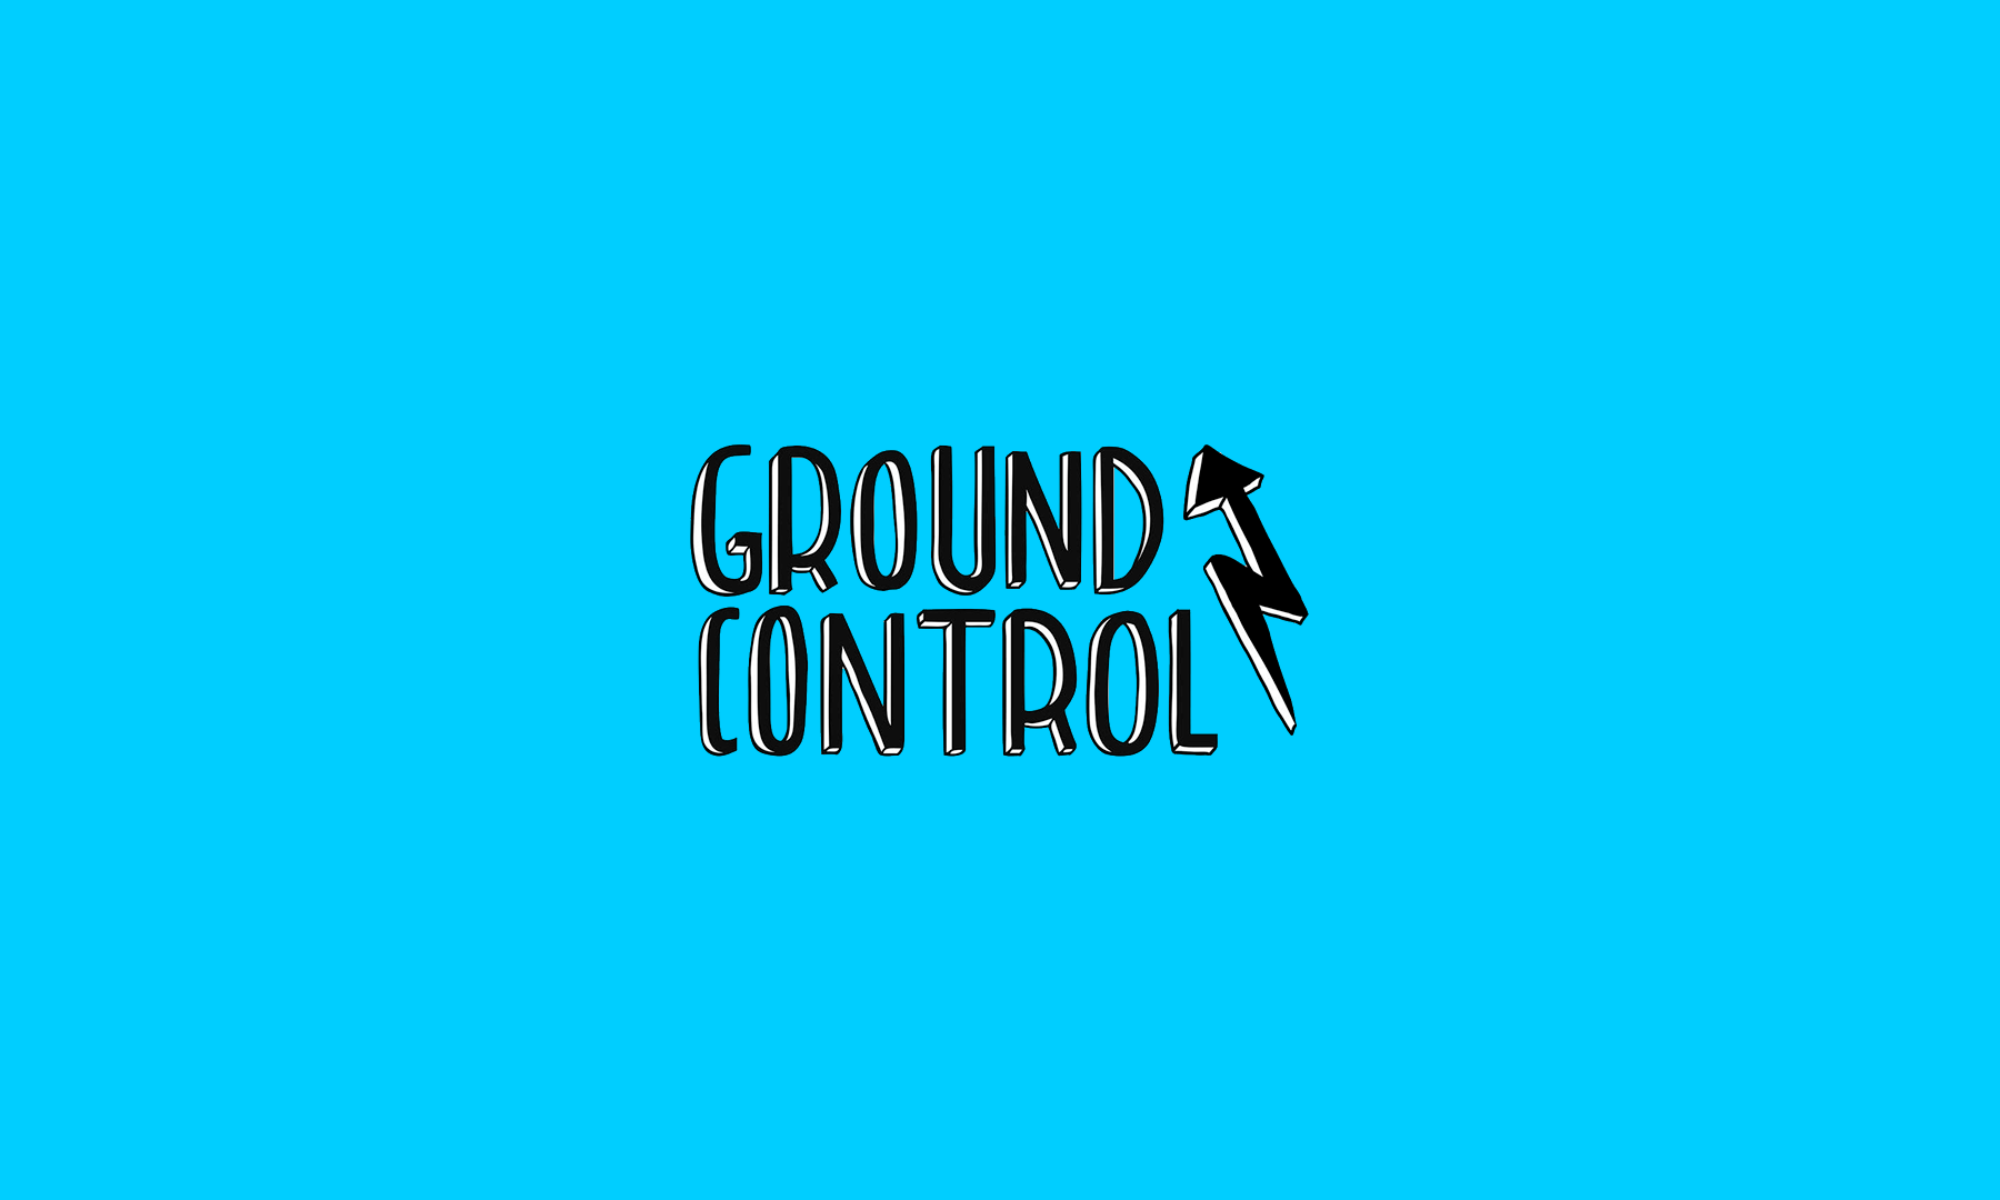 Ground Control Management